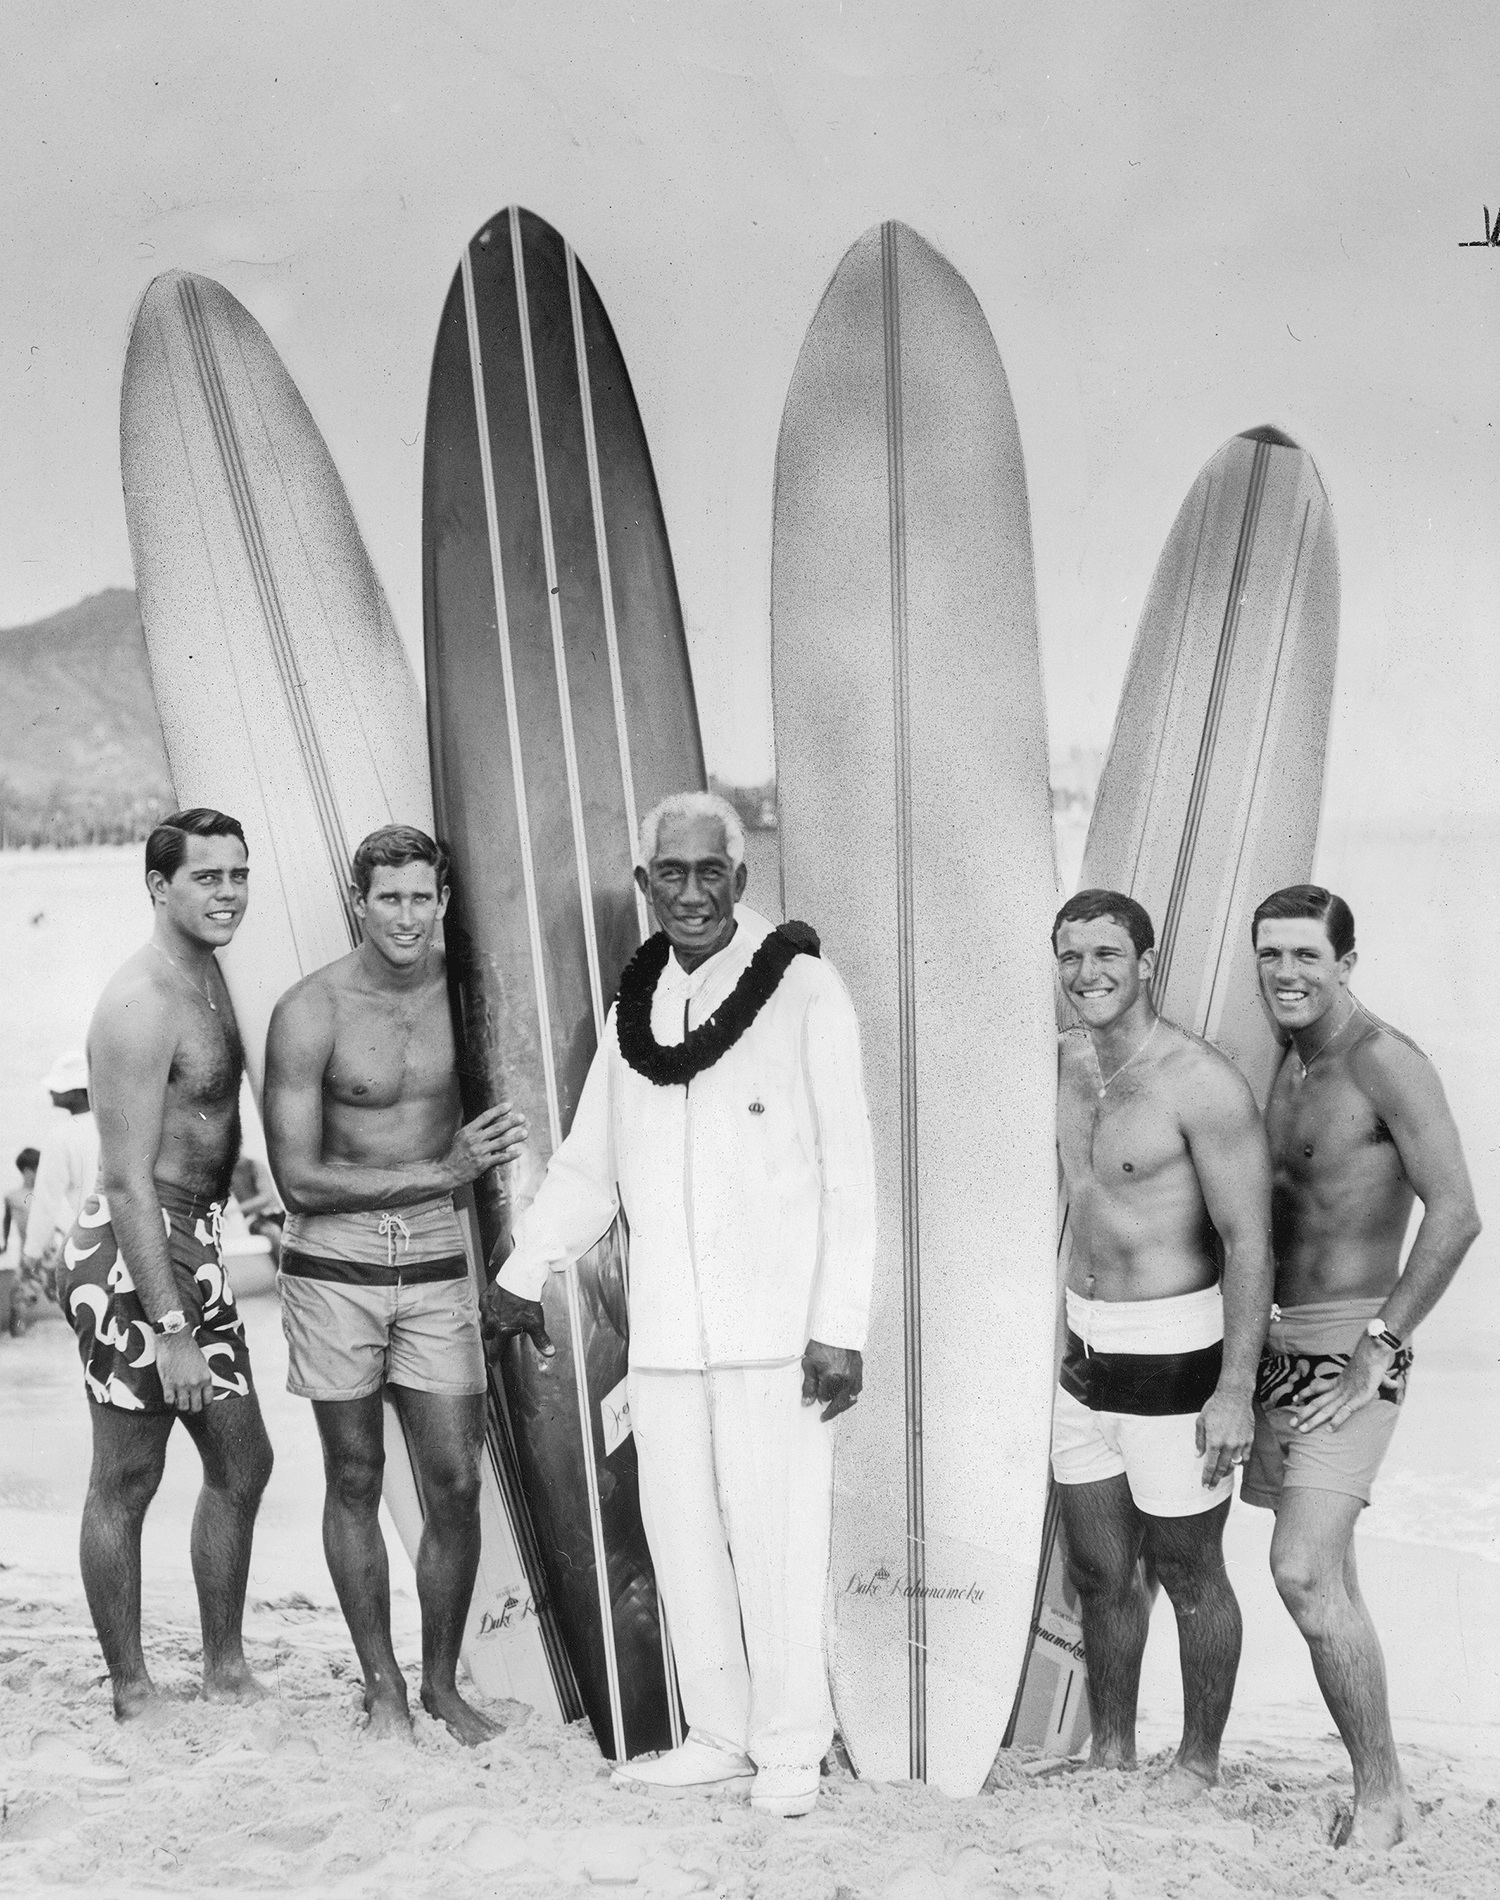 """Kahanamoku, center, stands with his all-star surfing team. From left to right: Paul Strauch Jr., inventor of the """"cheater five""""; Joey Cabell, founder of the Chart House restaurant chain; Fred Hemmings, 1968 world champion; and Butch Van Artsdalen, pioneer of Banzai Pipeline. Photo by Bob Johnson, Los Angeles Herald-Examiner."""